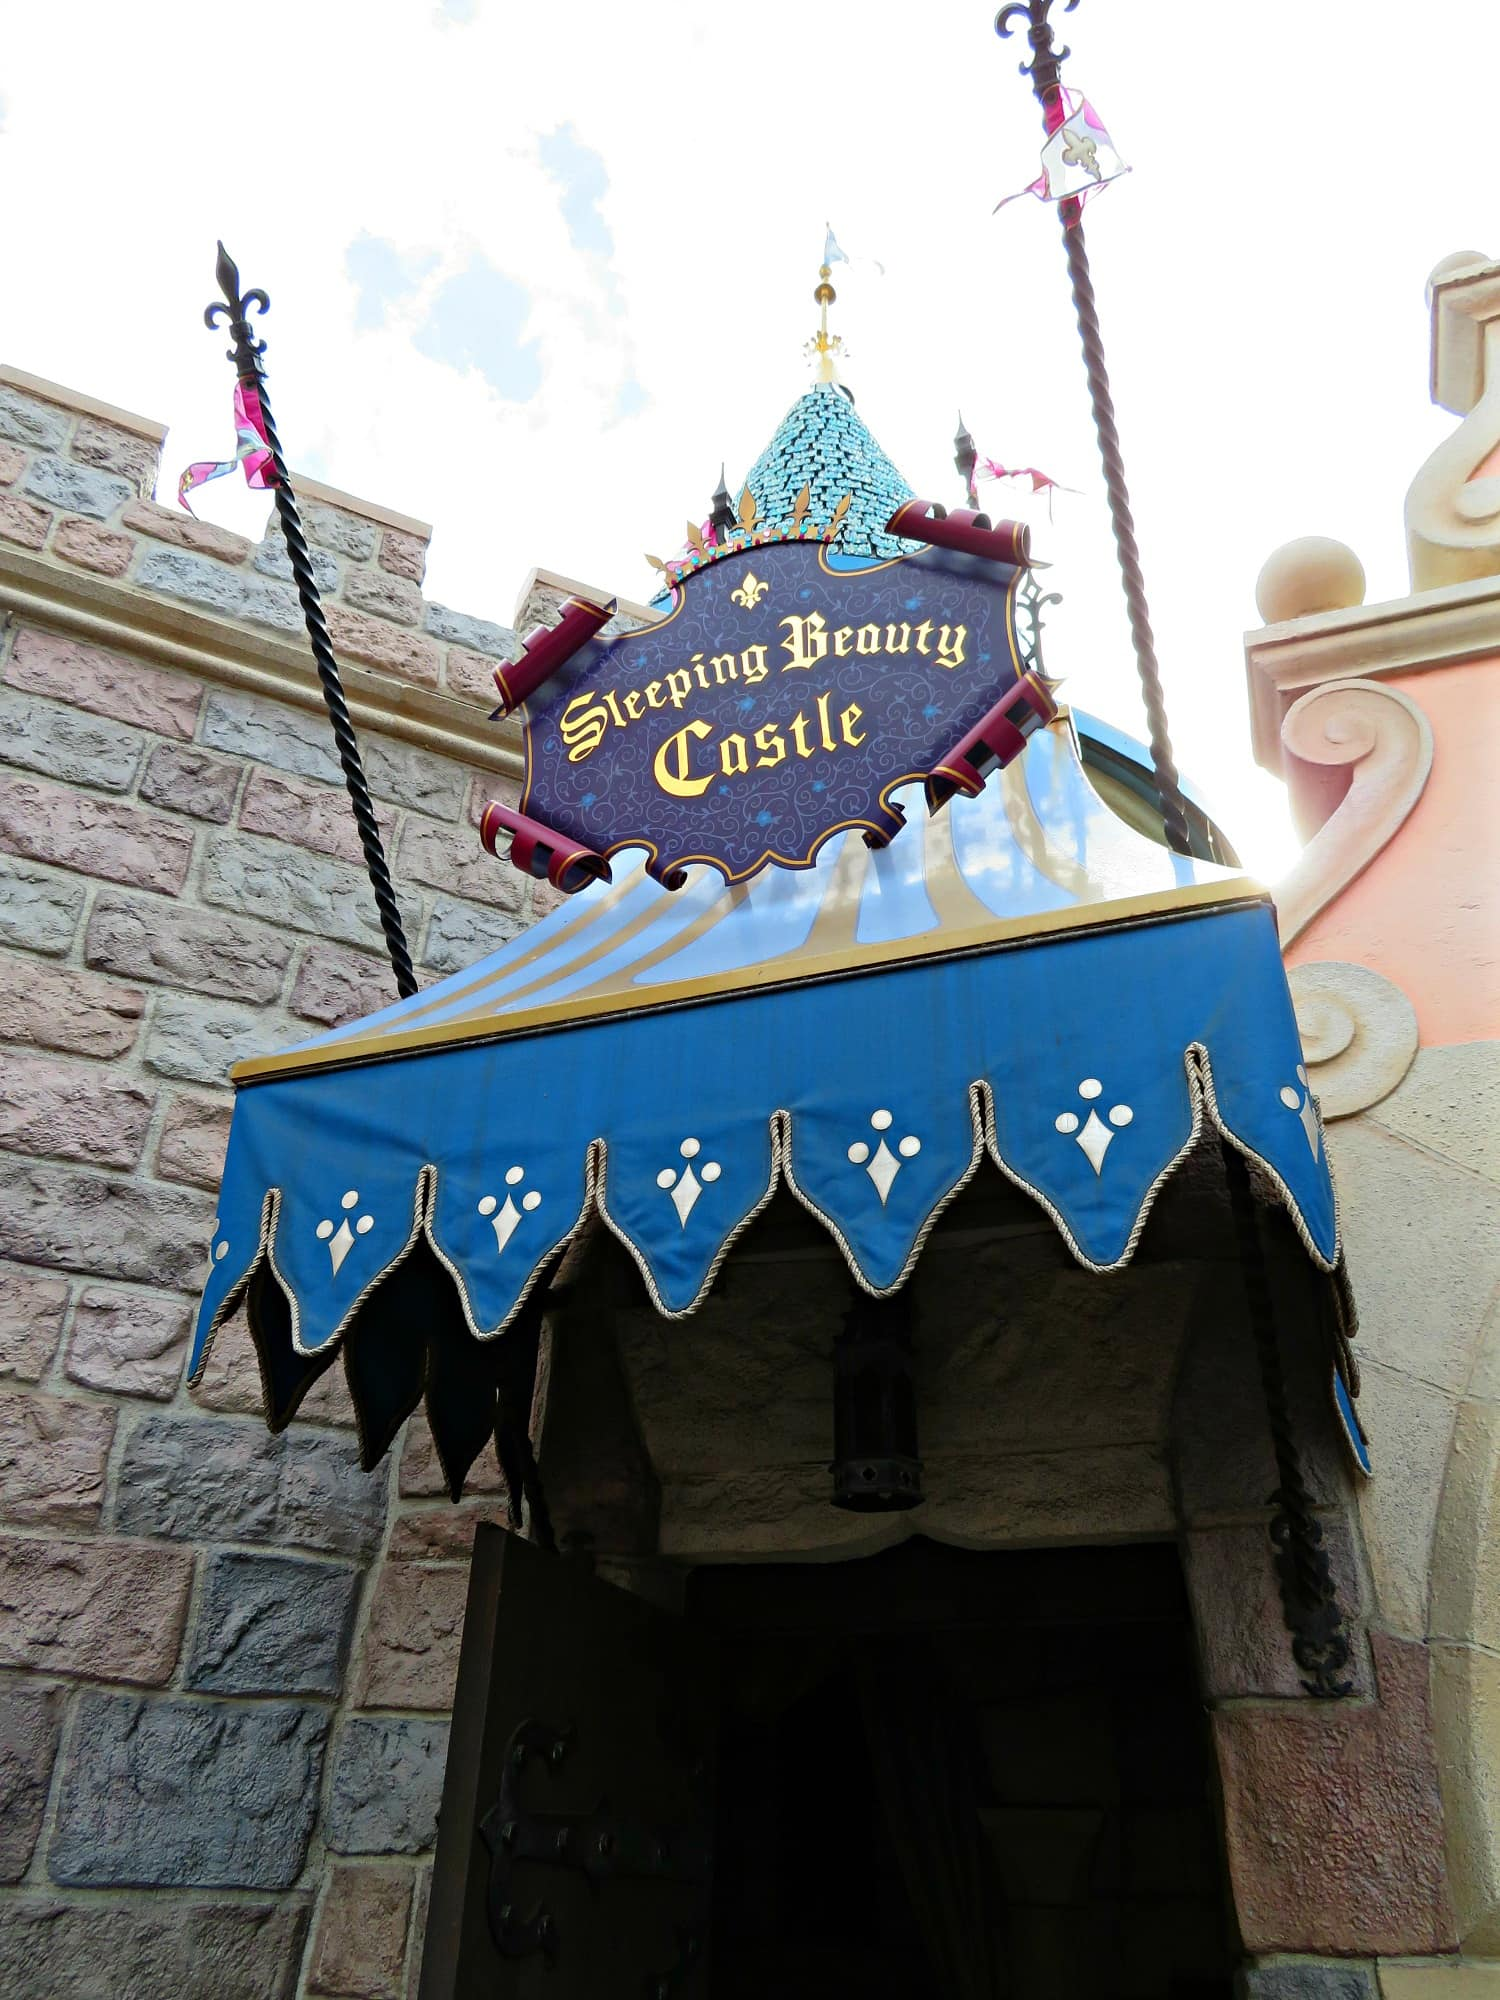 Read the story of Sleeping Beauty inside her castle ~ Educational Things to Do at Disneyland with Kids